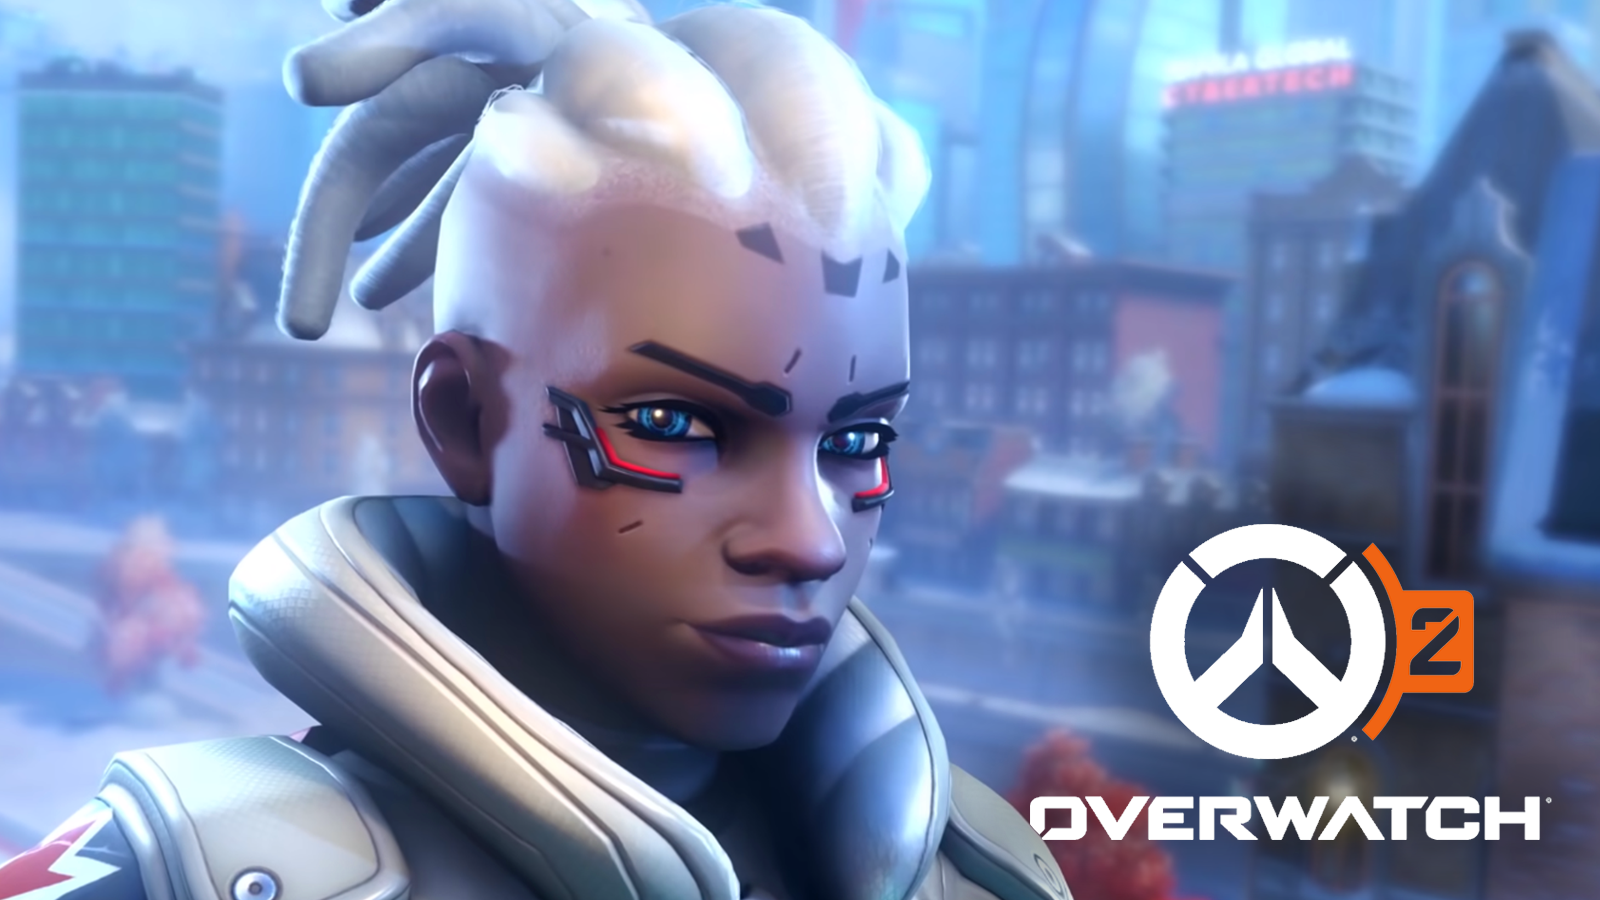 Sojourn in Overwatch